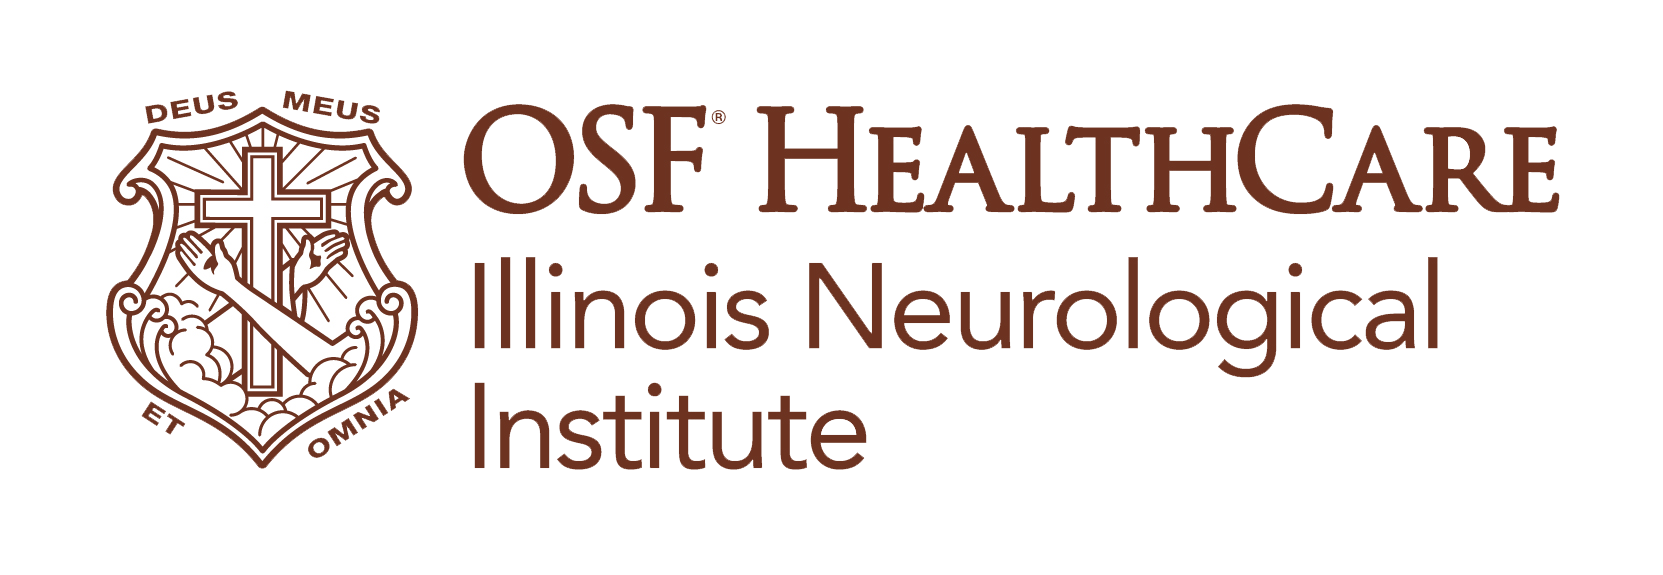 OSF Healthcare: Illinois Neurological Institute